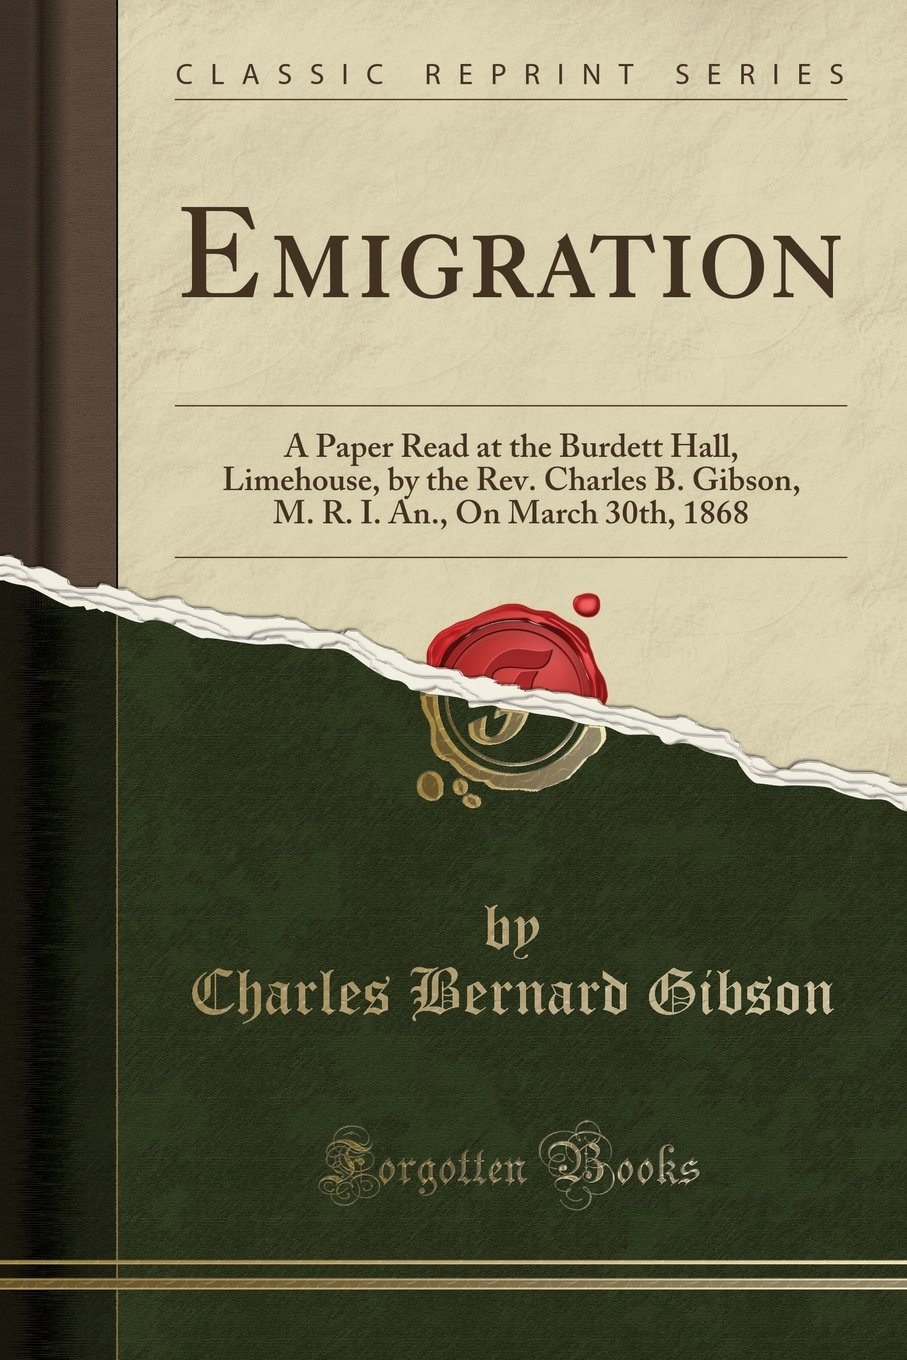 Download Emigration: A Paper Read at the Burdett Hall, Limehouse, by the Rev. Charles B. Gibson, M. R. I. An., On March 30th, 1868 (Classic Reprint) PDF